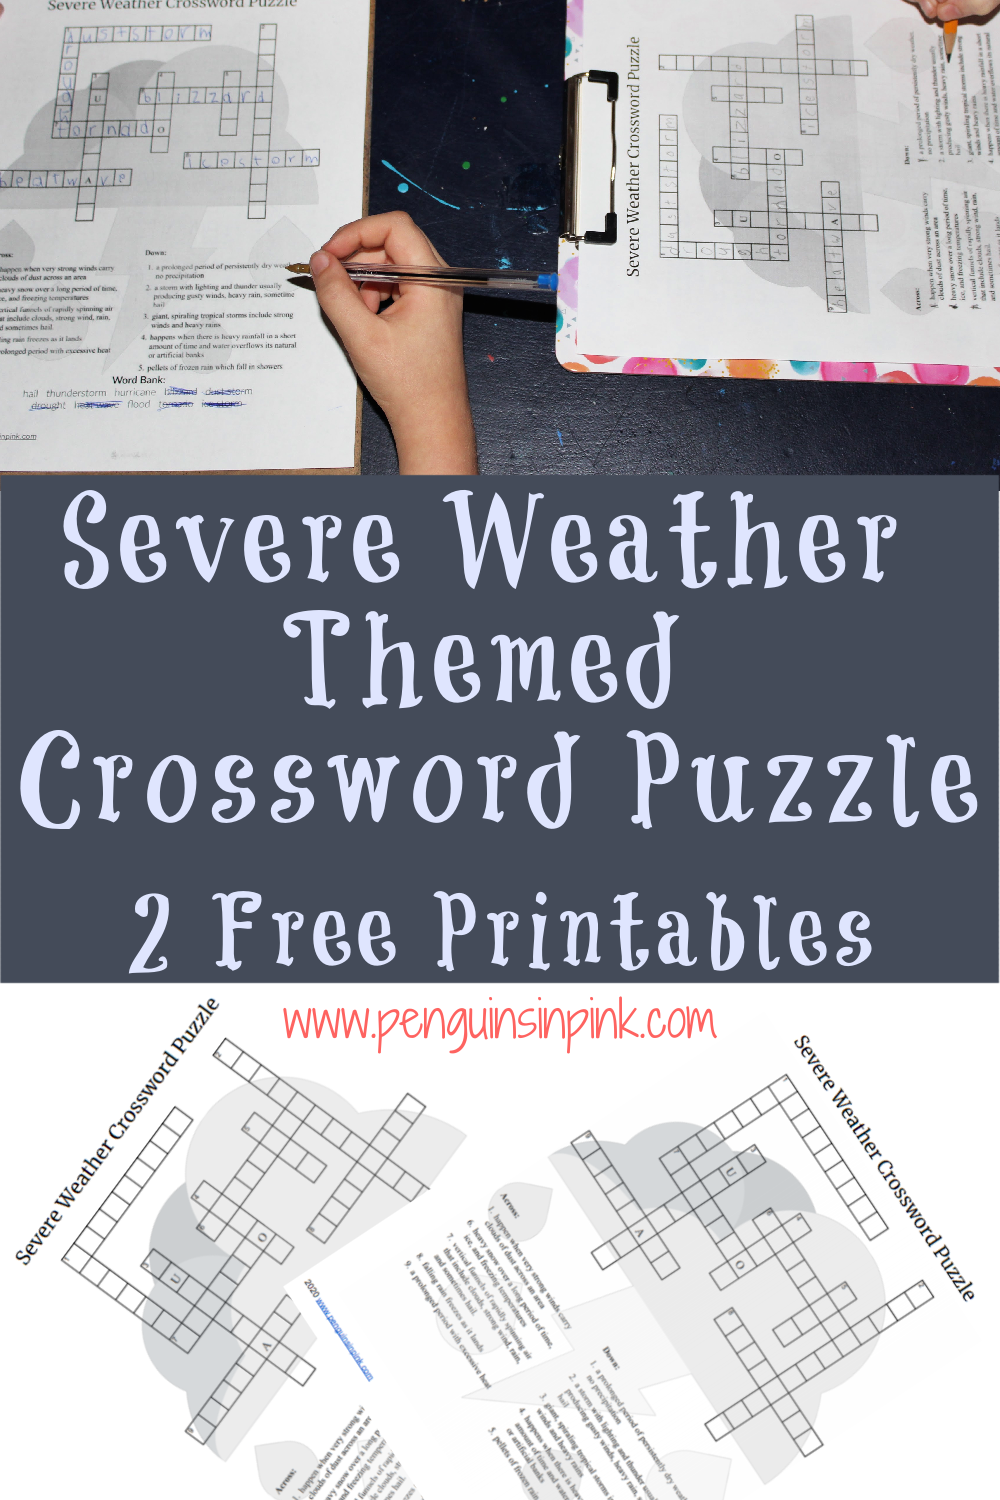 This FREE Printable Severe Weather Crossword Puzzle is an easy way to help kids review their weather knowledge or learn something new severe weather. The crossword puzzle is available either with a word bank or without one. An answer key is also included.